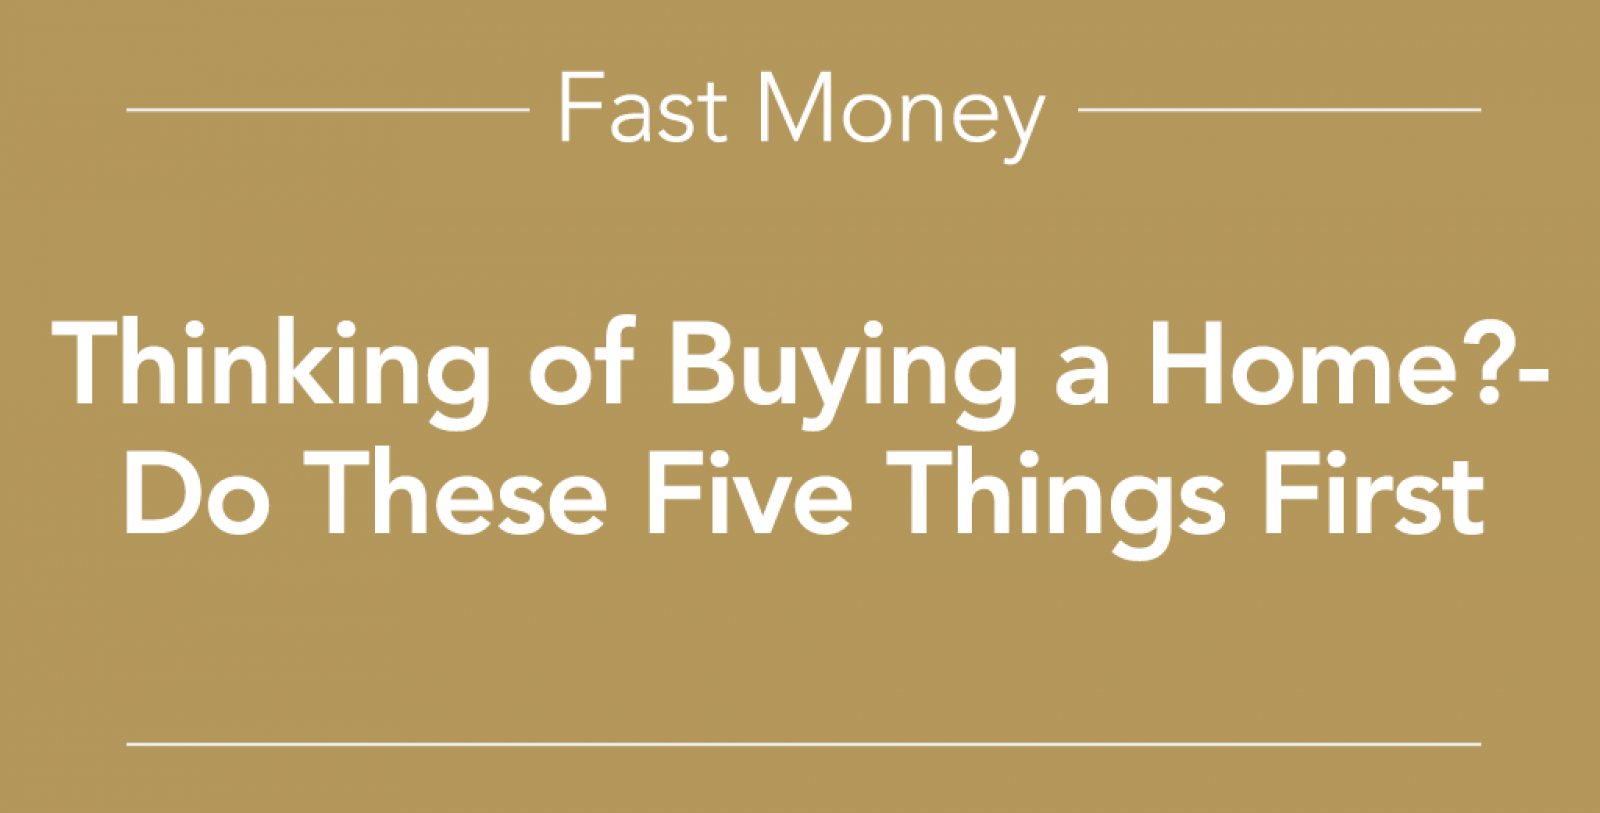 Thinking of buying a home? Do these things first